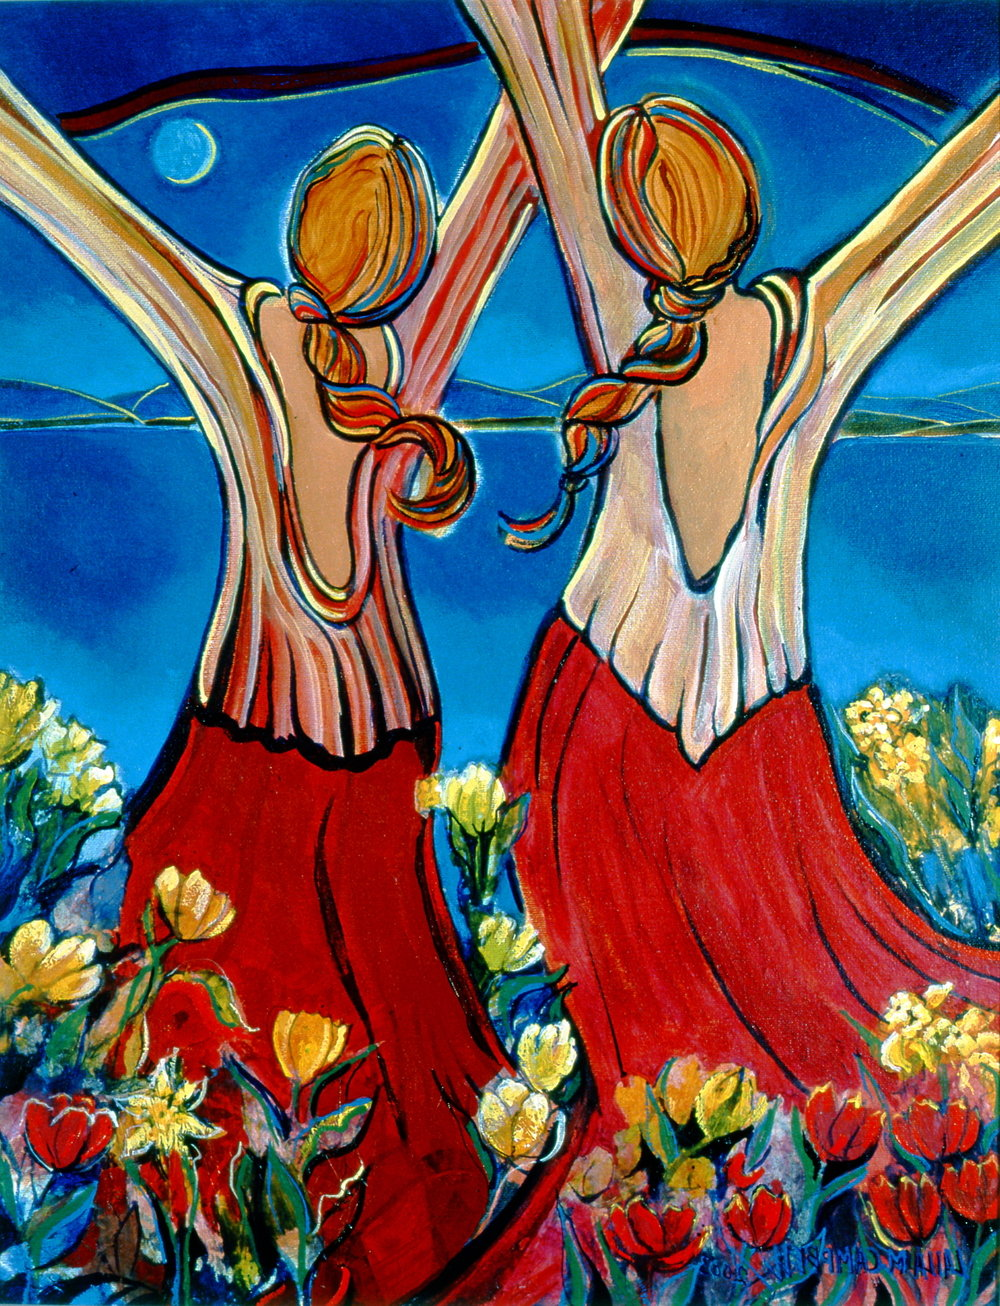 Spring Dancers , 2003, Laila M. Campbell, acrylic and tissue paper on canvas, 45 cm x 35 cm, 2003.01.01, gift of the artist